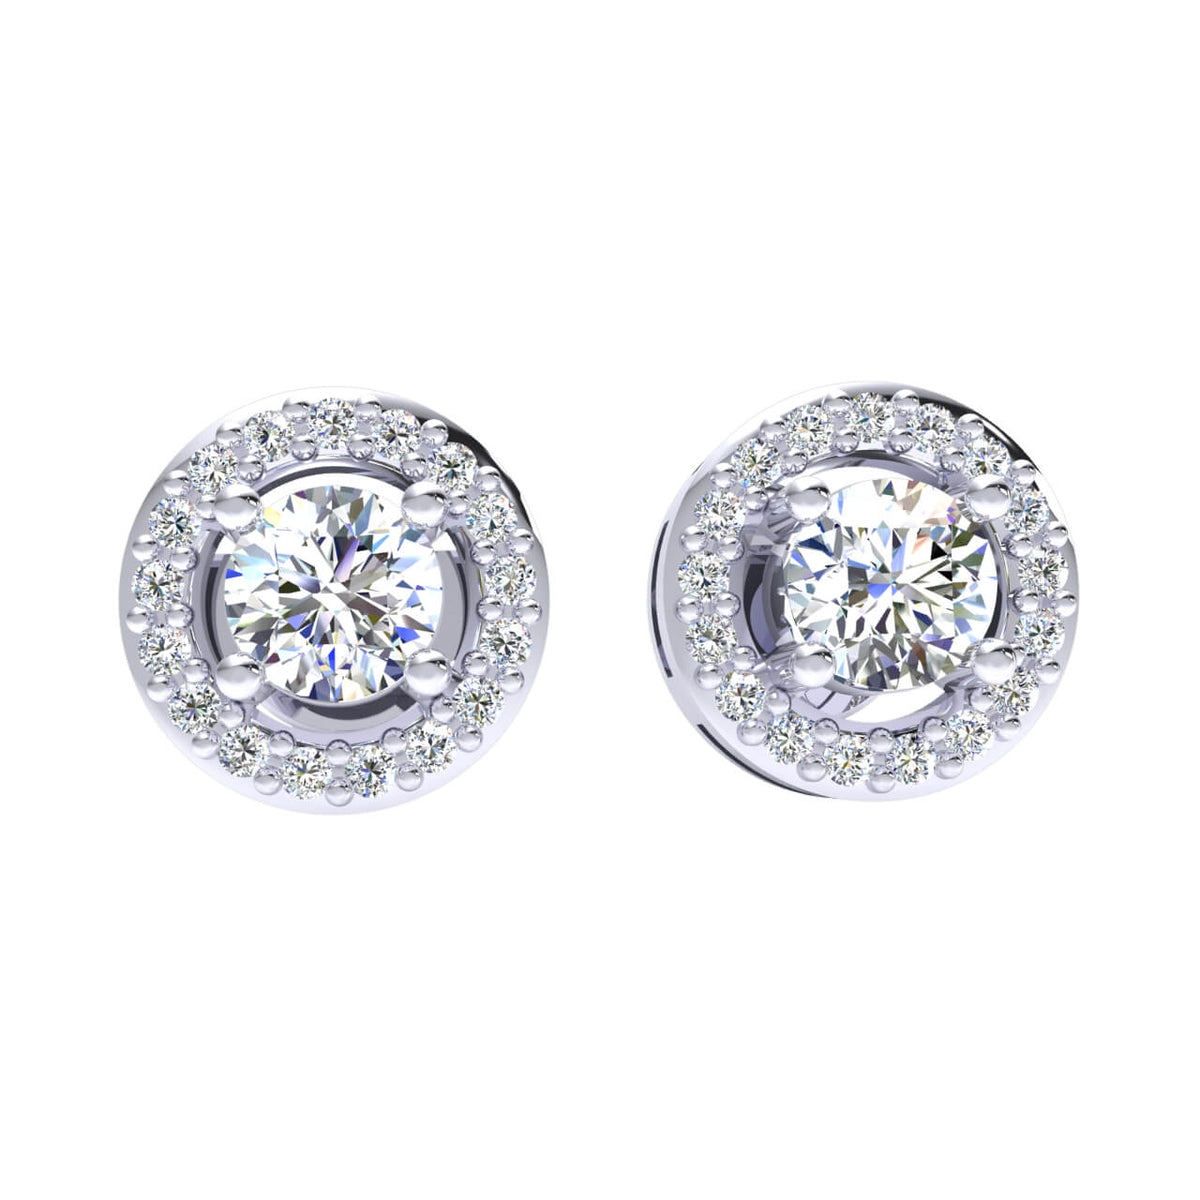 0.55 Ct Round GH I1-I2 Diamond Solitaire Unisex Stud Earrings 925 Sterling Silver